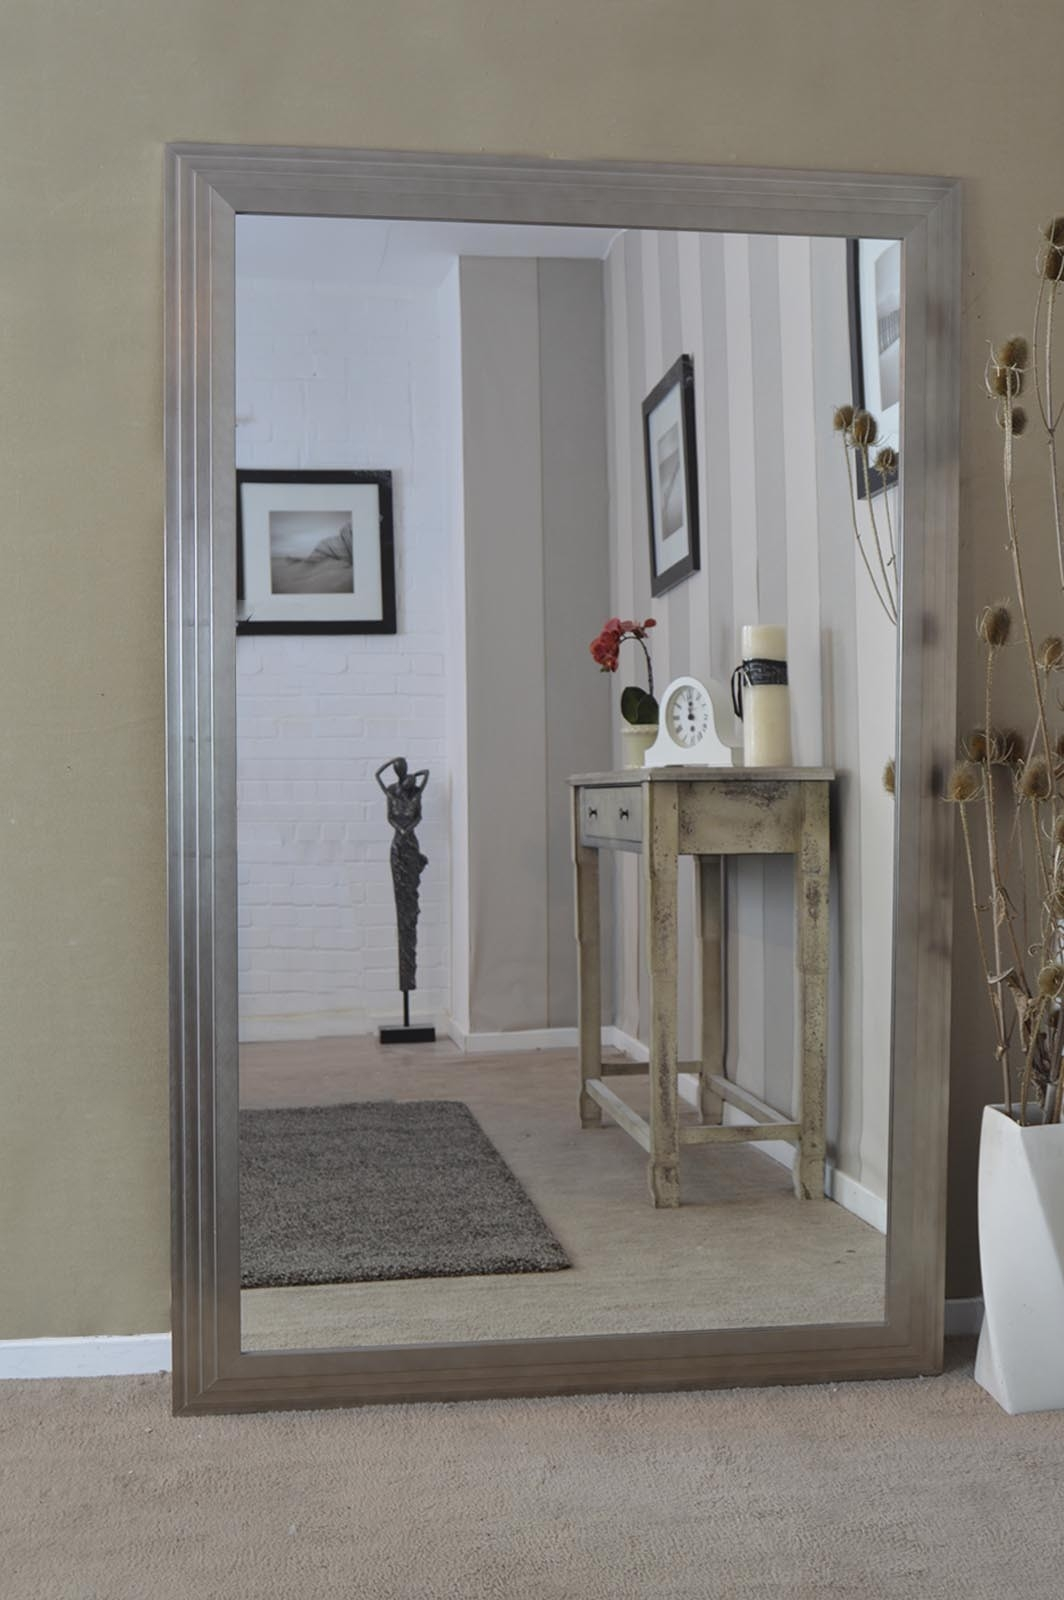 Big Mirrors For Sale 12 Enchanting Ideas With Large Leaning Regarding Oversized Mirrors For Sale (Image 7 of 15)